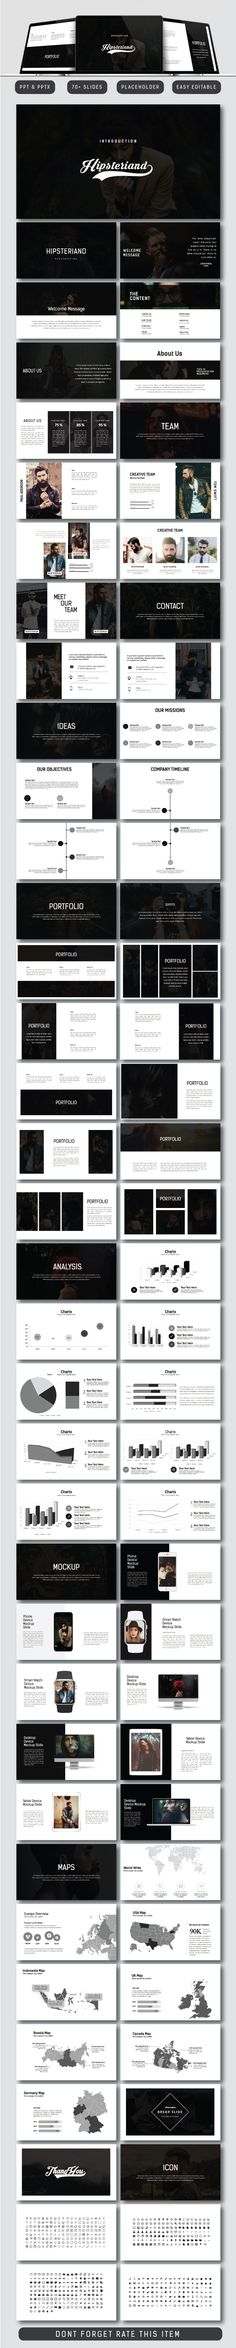 Hipsteriand Business Powerpoint - PowerPoint Templates Presentation Templates